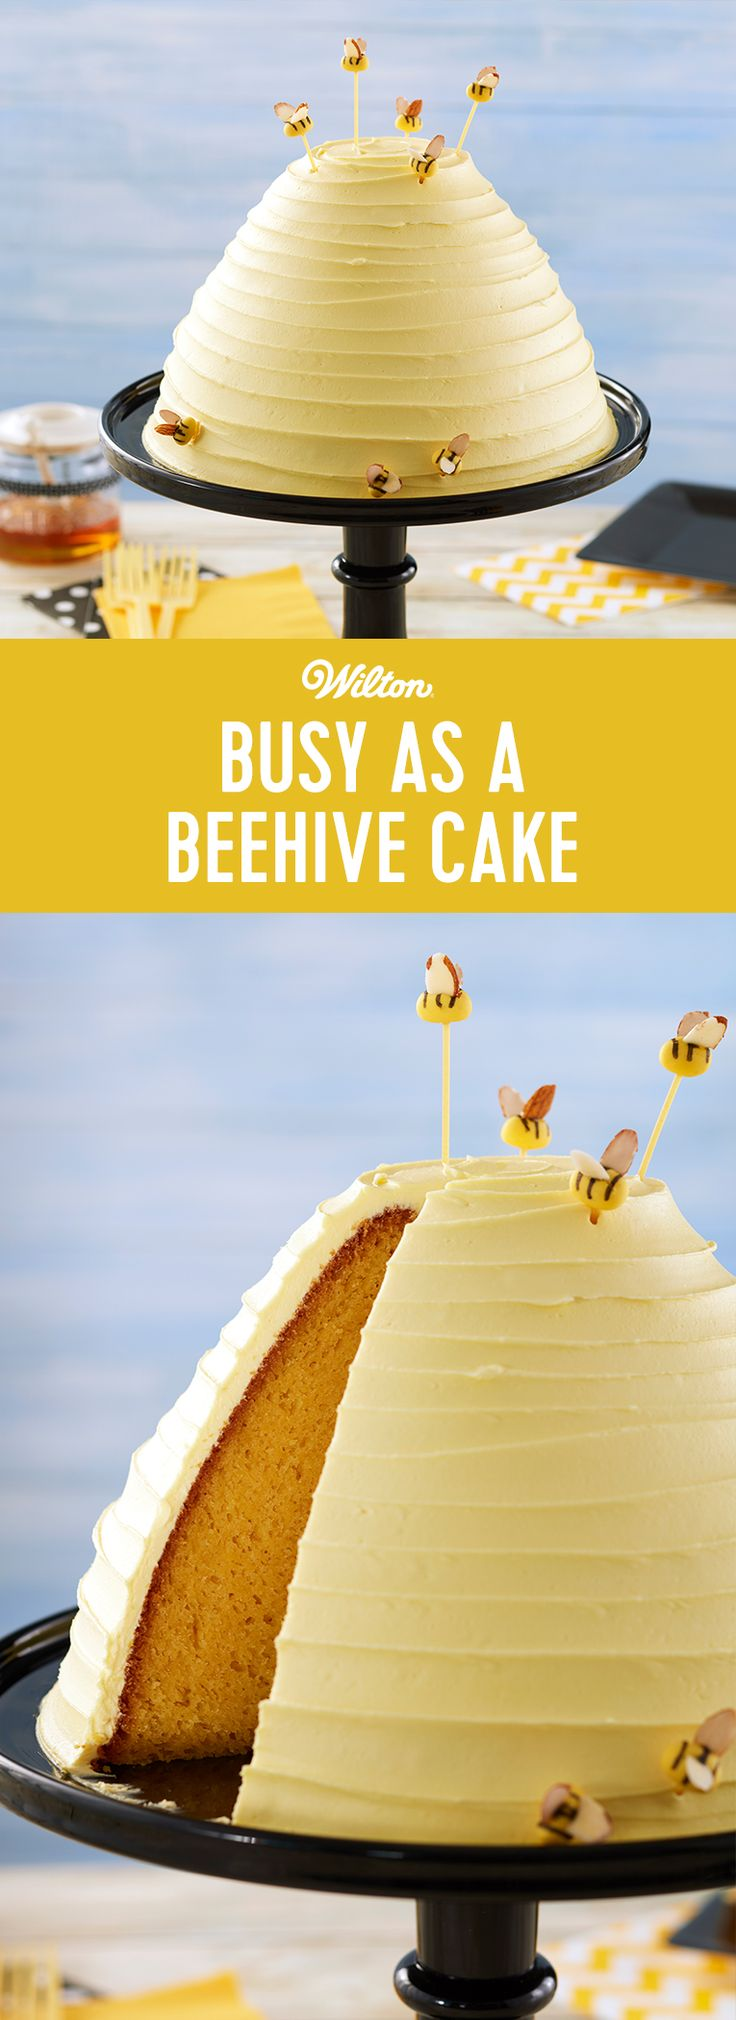 Busy as a Beehive Cake - If you're buzzing around from one task to another these days, this Busy as a Beehive Cake is for you! Easy to make and decorate, this bee-autiful cake is made using the Wilton Wonder Mold Pan and is embellished with cute fondant bees. A simple icing decoration makes this cake a crowning achievement for even beginning decorators, and would be great to serve for Mother's Day, a birthday or even for a mommy to bee! #wiltoncakes #birthdaycake #cakedecorating #baking